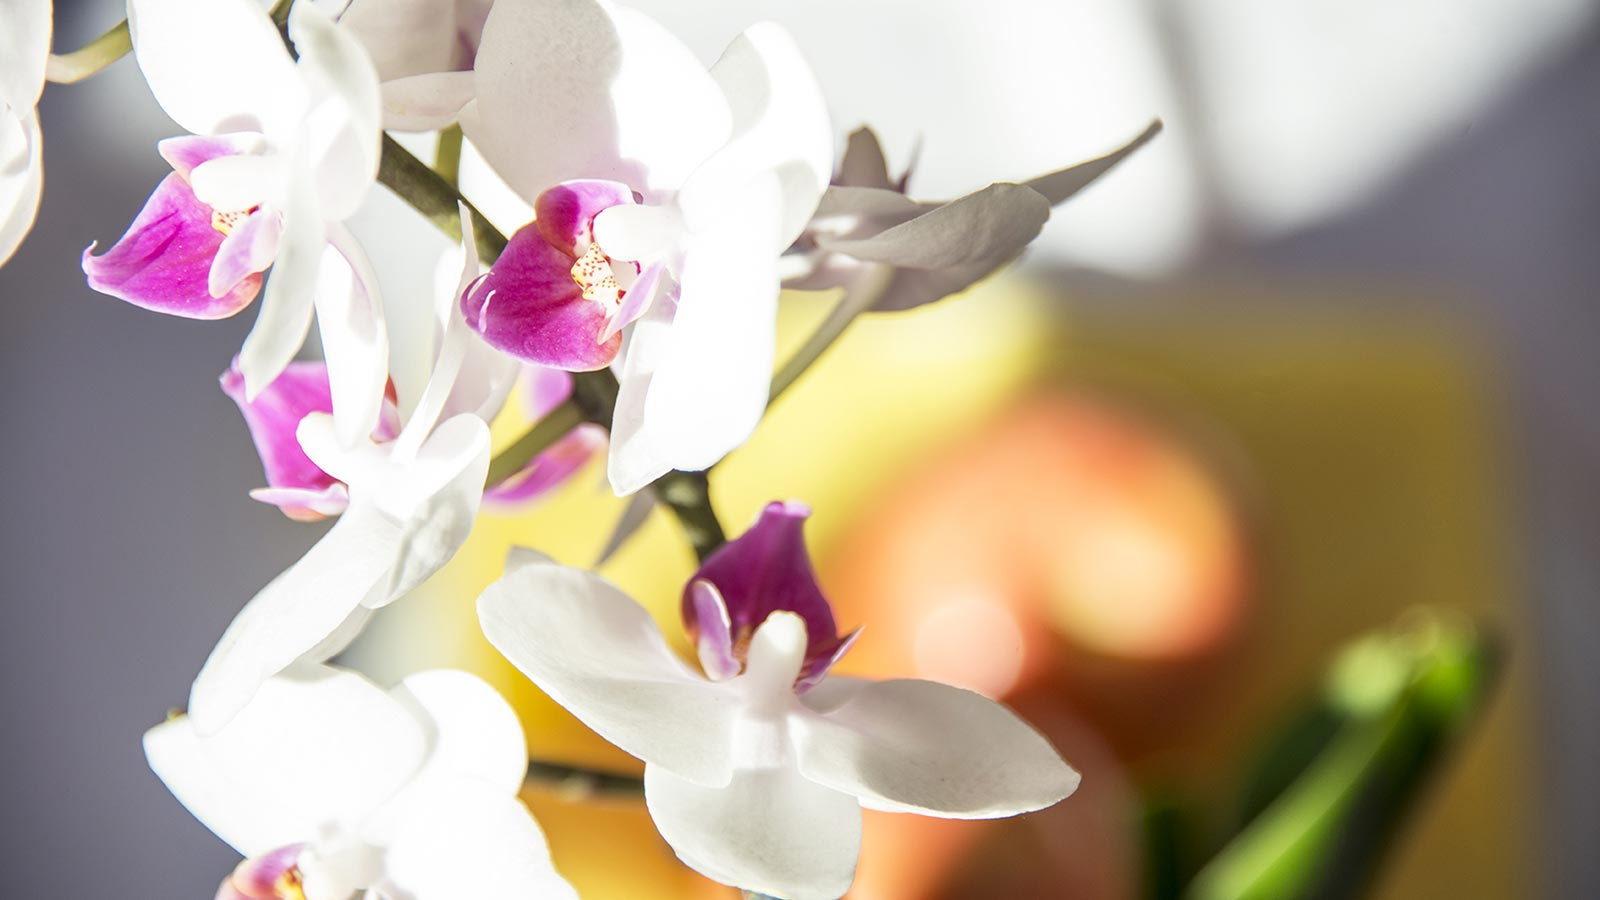 Gracious orchid in white and purple color